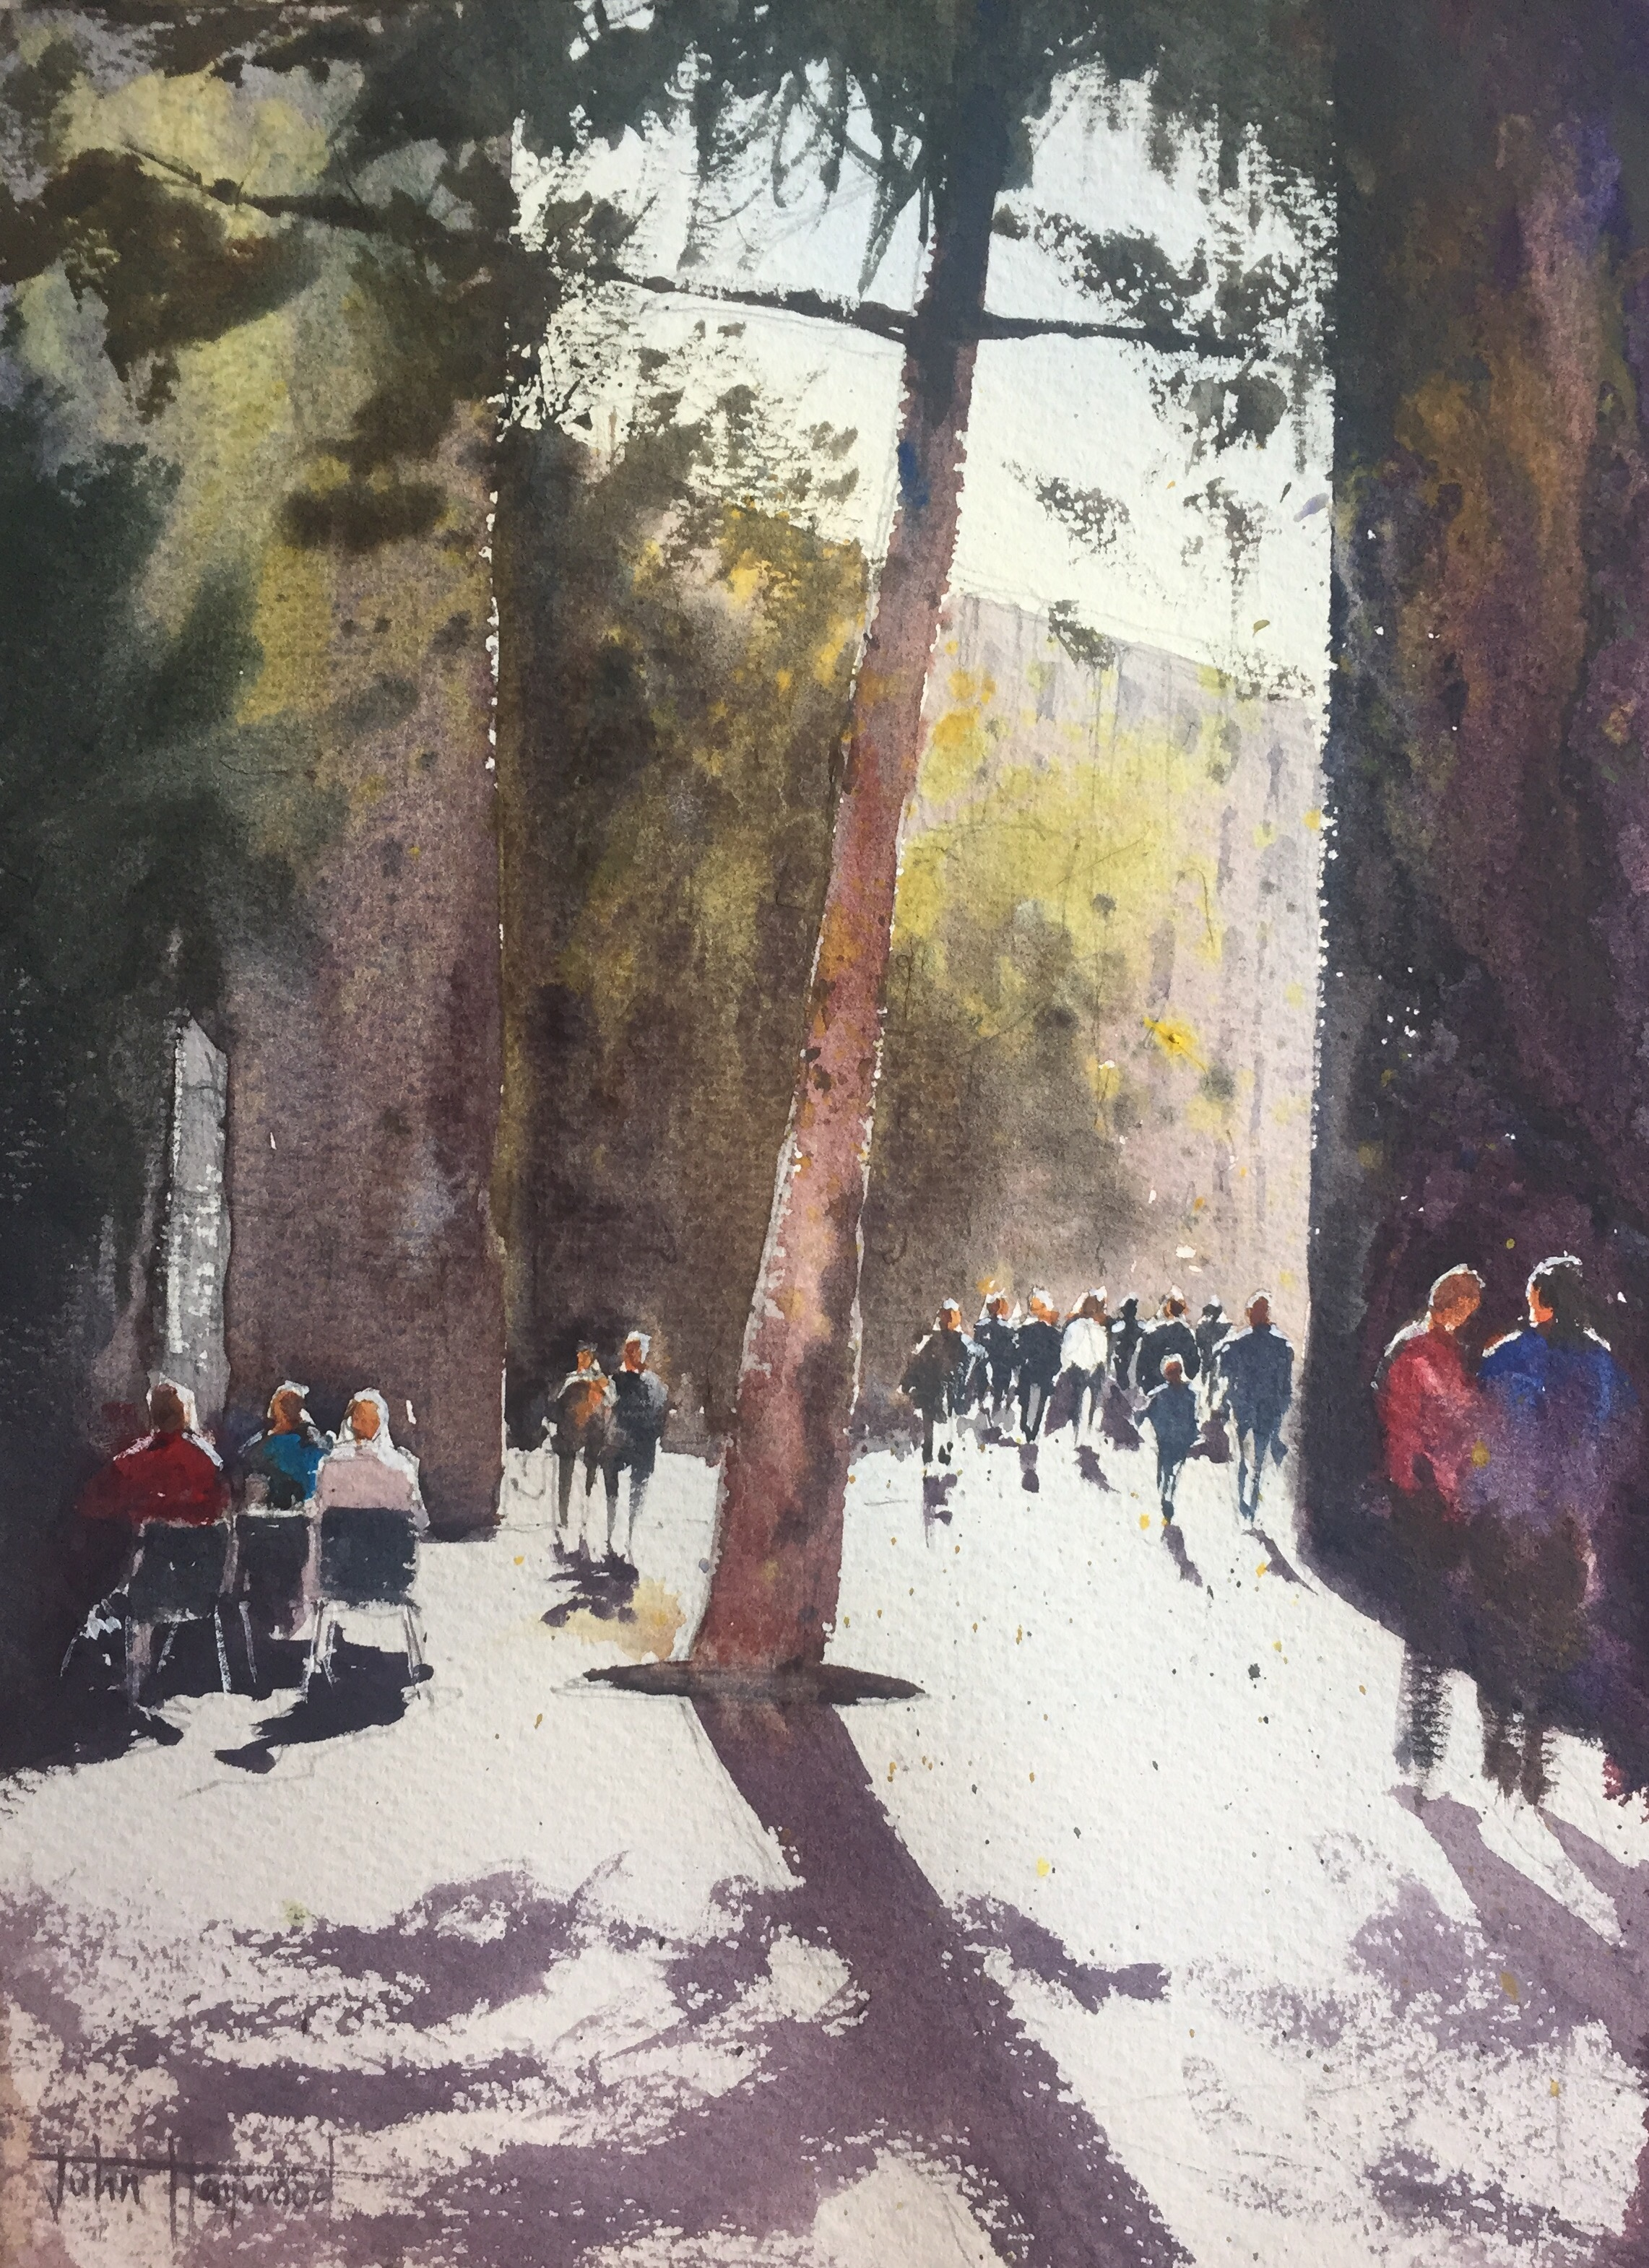 Watercolour painting of a Barcelona street scene by John Haywood